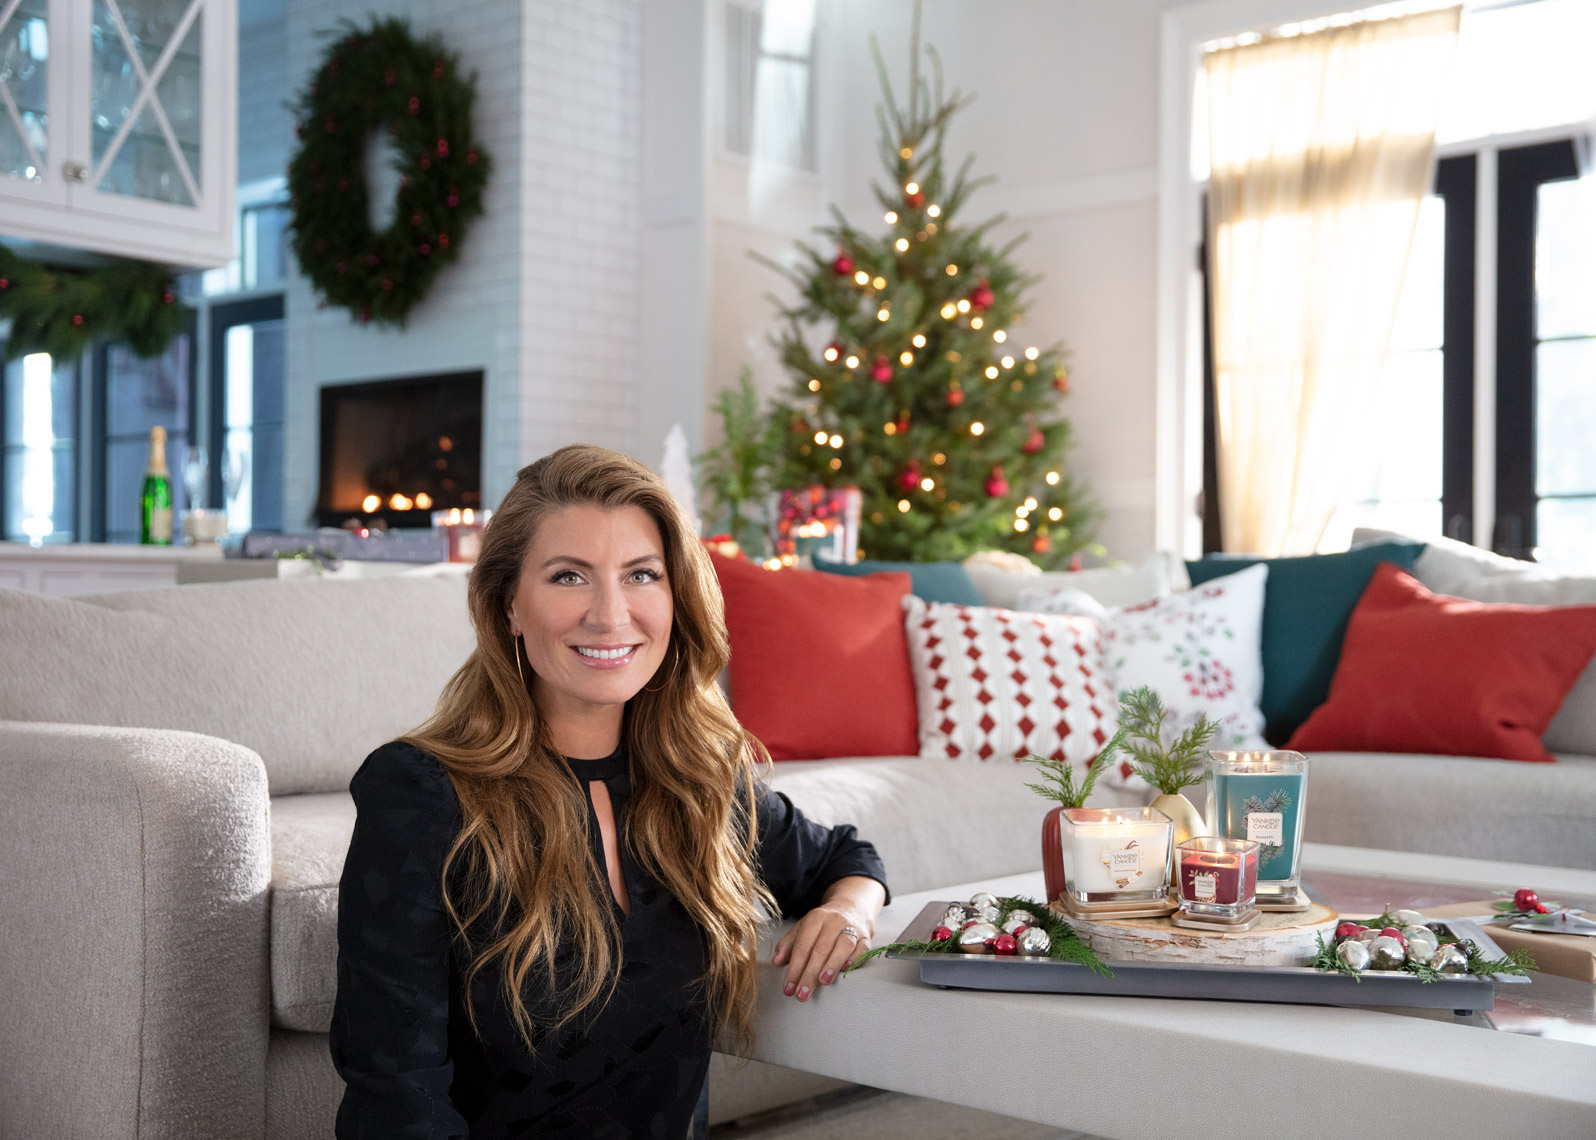 genevieve-gorder-Yankee-Candle-Holiday-livingroom-Poul-ober-photography